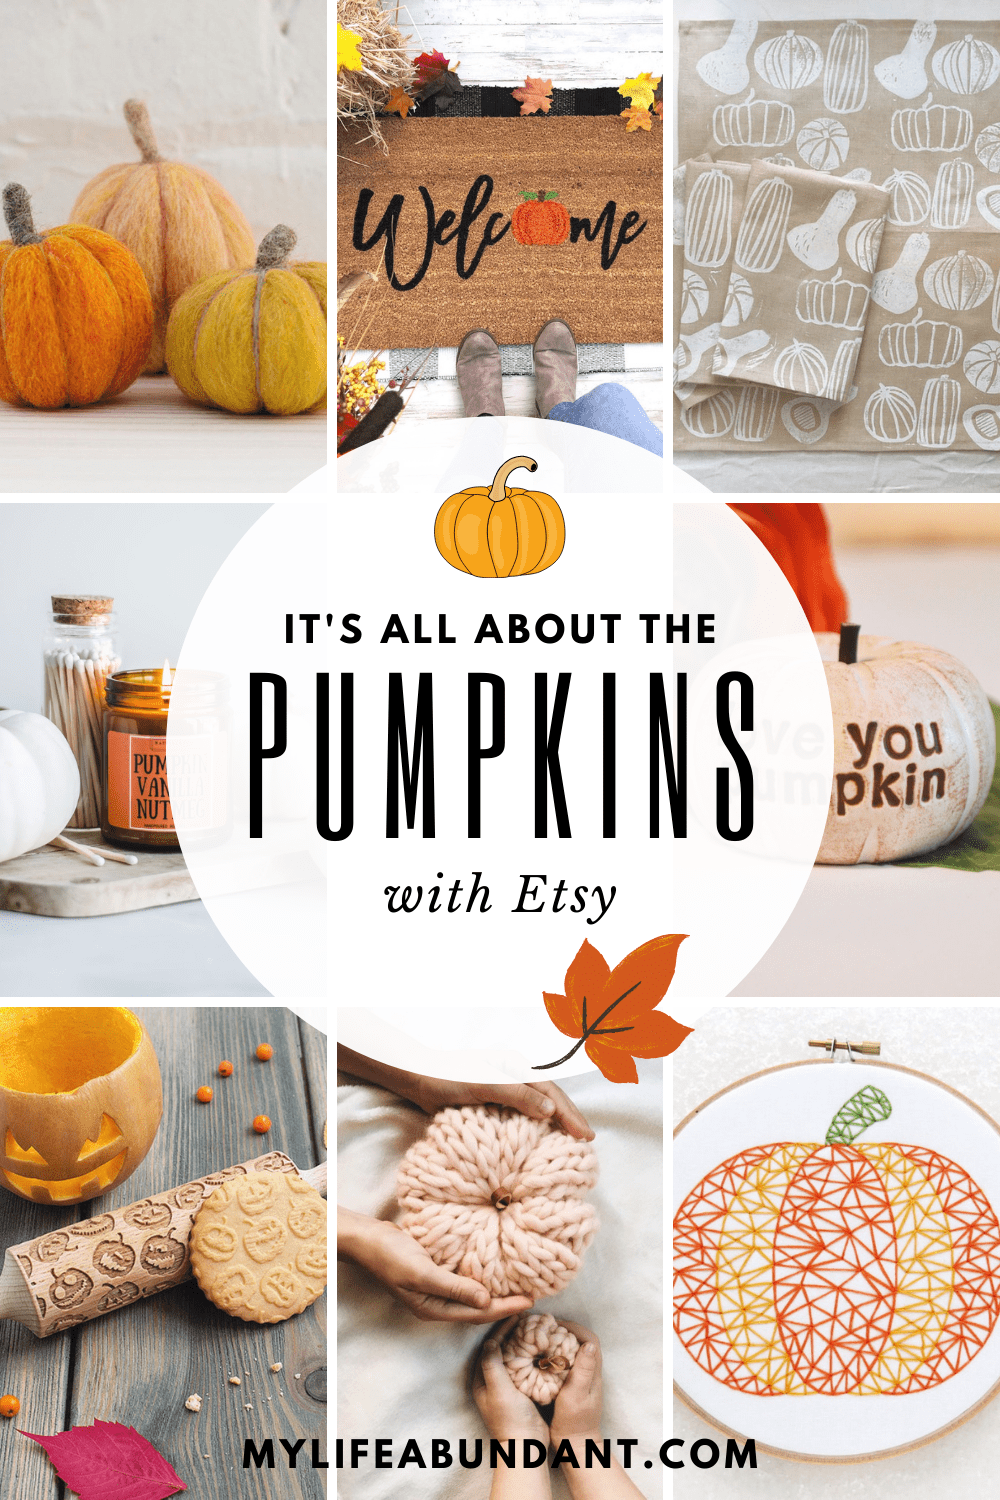 Decorating with pumpkins are so easy to do with all the choices you can find at Etsy.